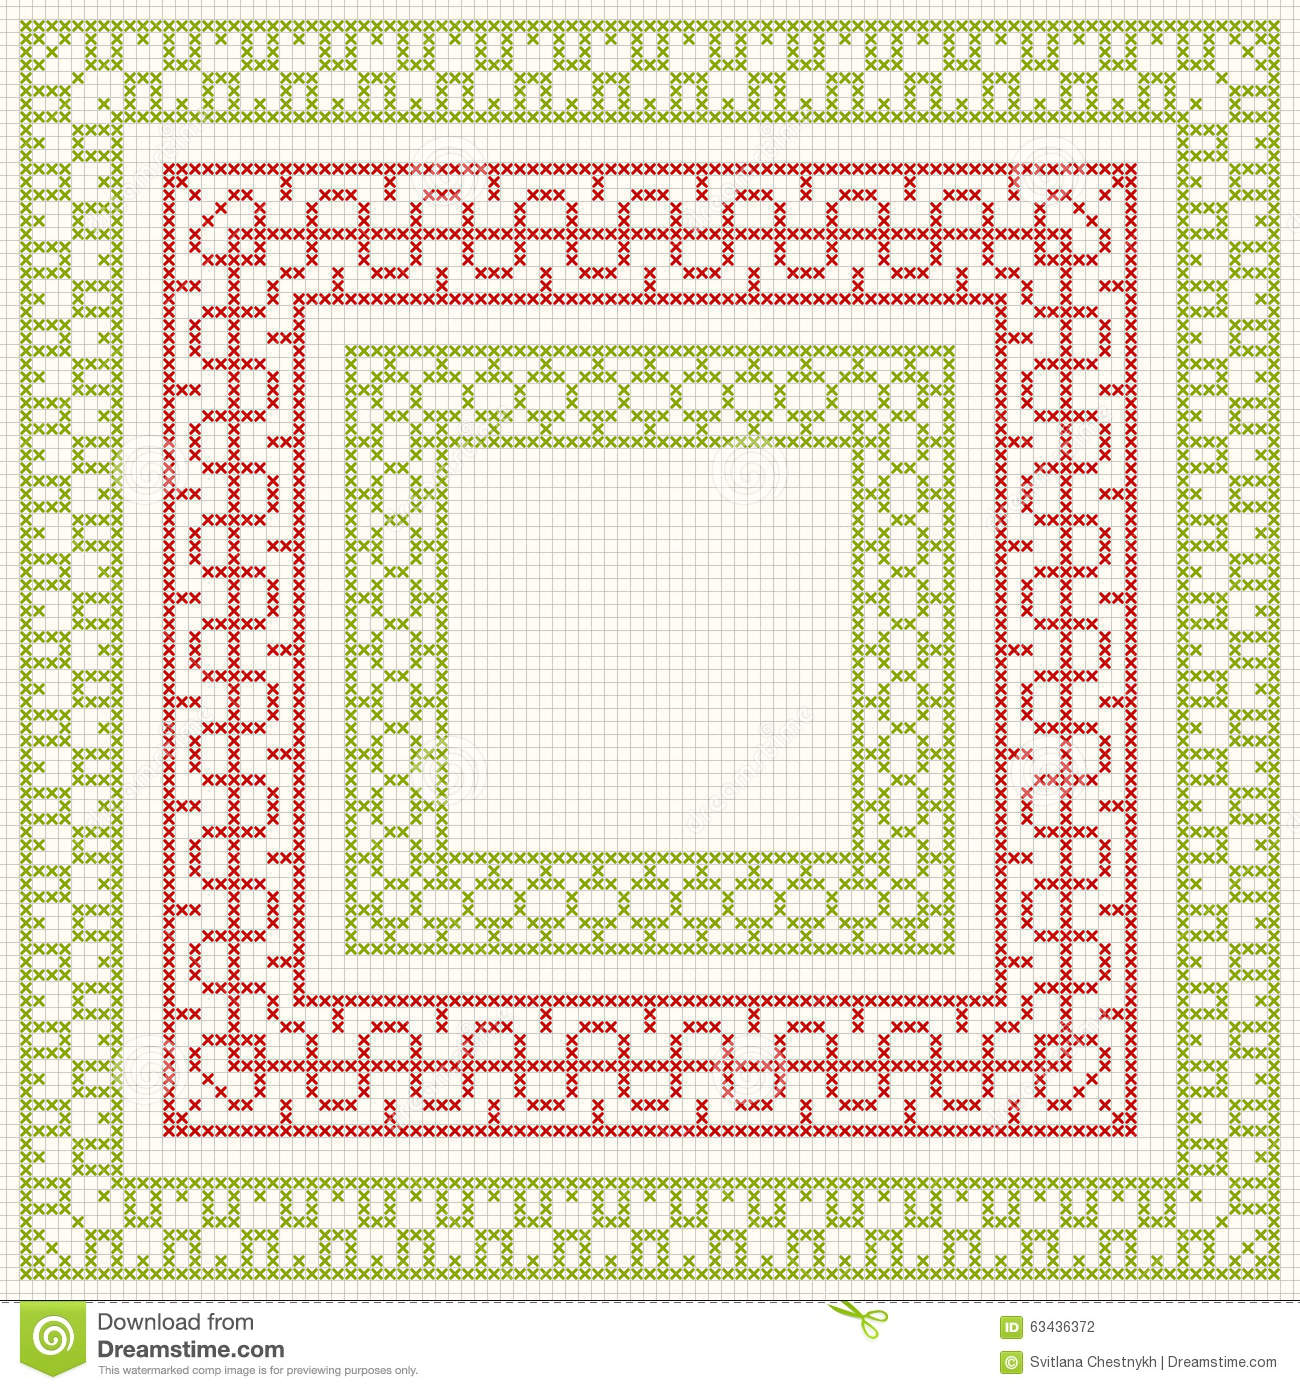 ... frames for cross-stitch embroidery in classic style. Red and green